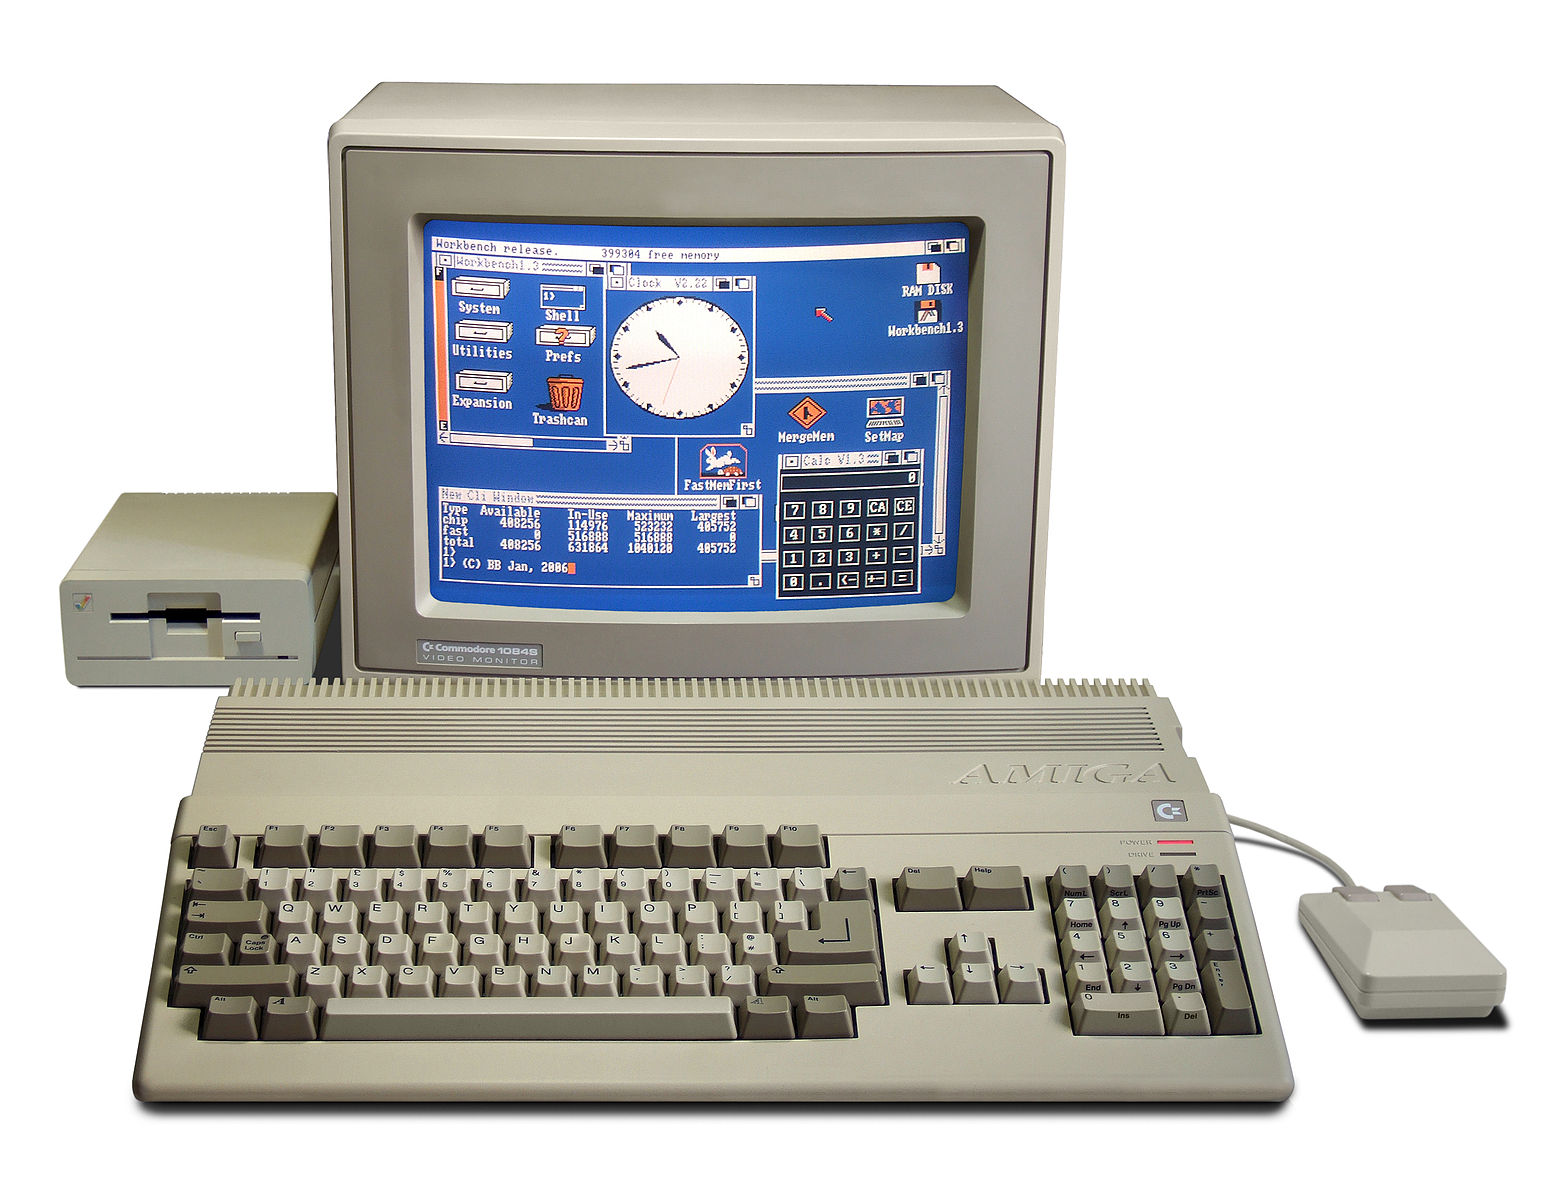 The Amiga 500 personal computer system, pictured with a monitor, a mouse, a keyboard, and a floppy disk drive.